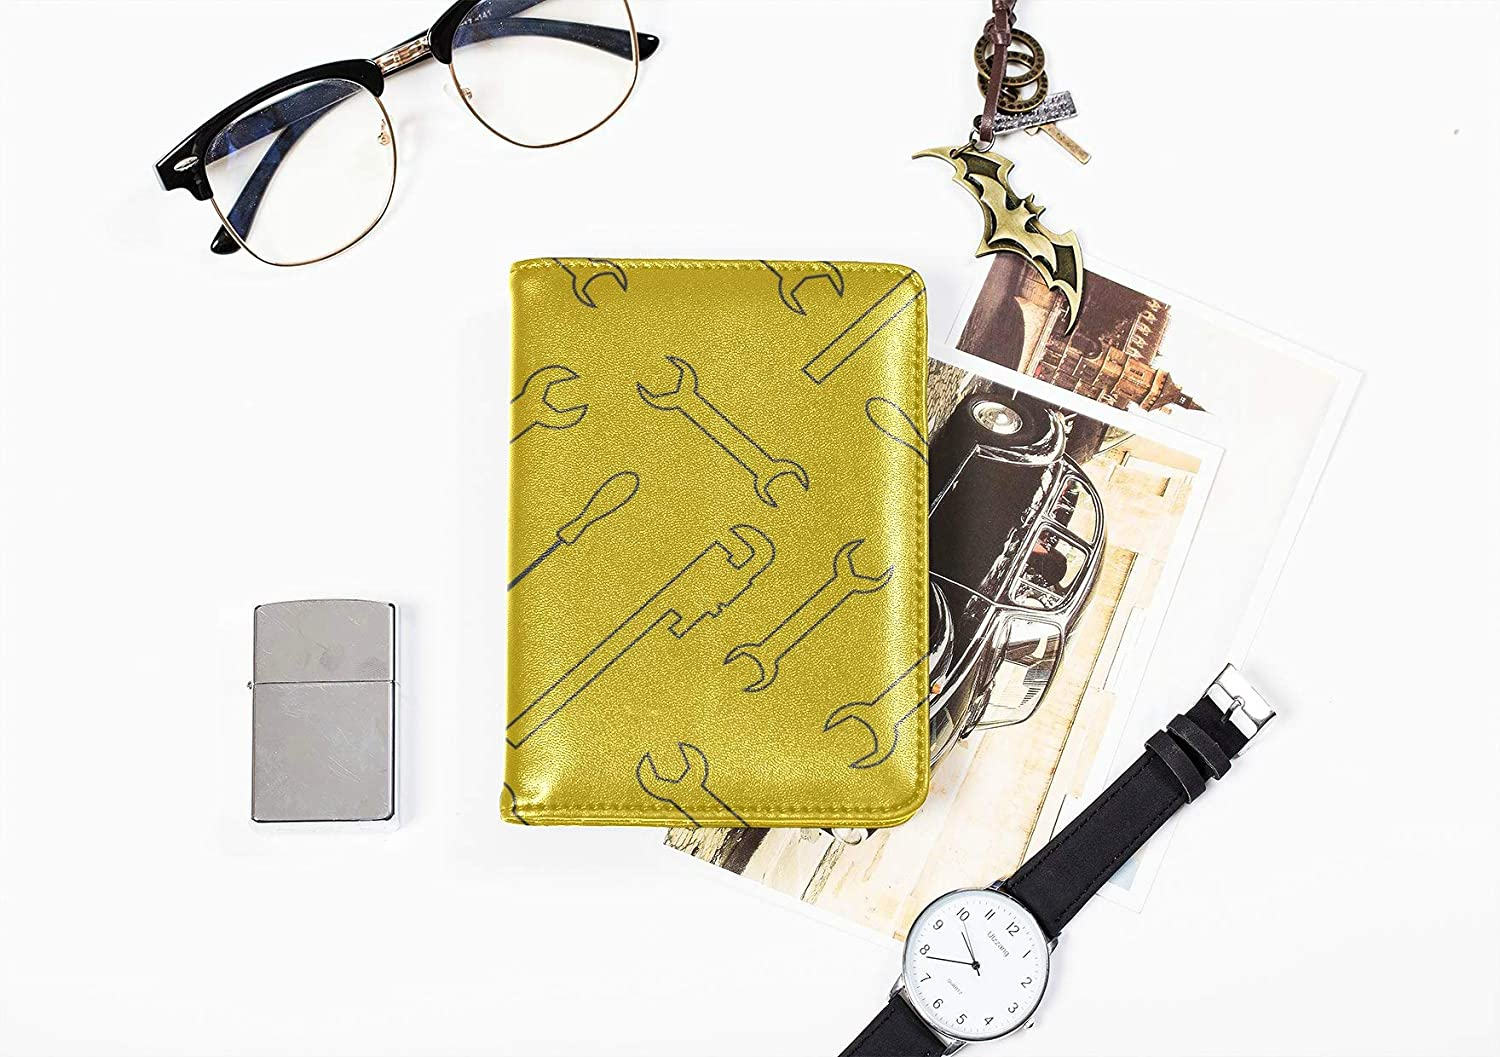 Personalize Passport Holder Case Fashion Cartoon Cute Tool Wrench Men Passport Case Multi Purpose Print Cover For Passport Travel Wallets For Unisex 5.51x4.37 Inch